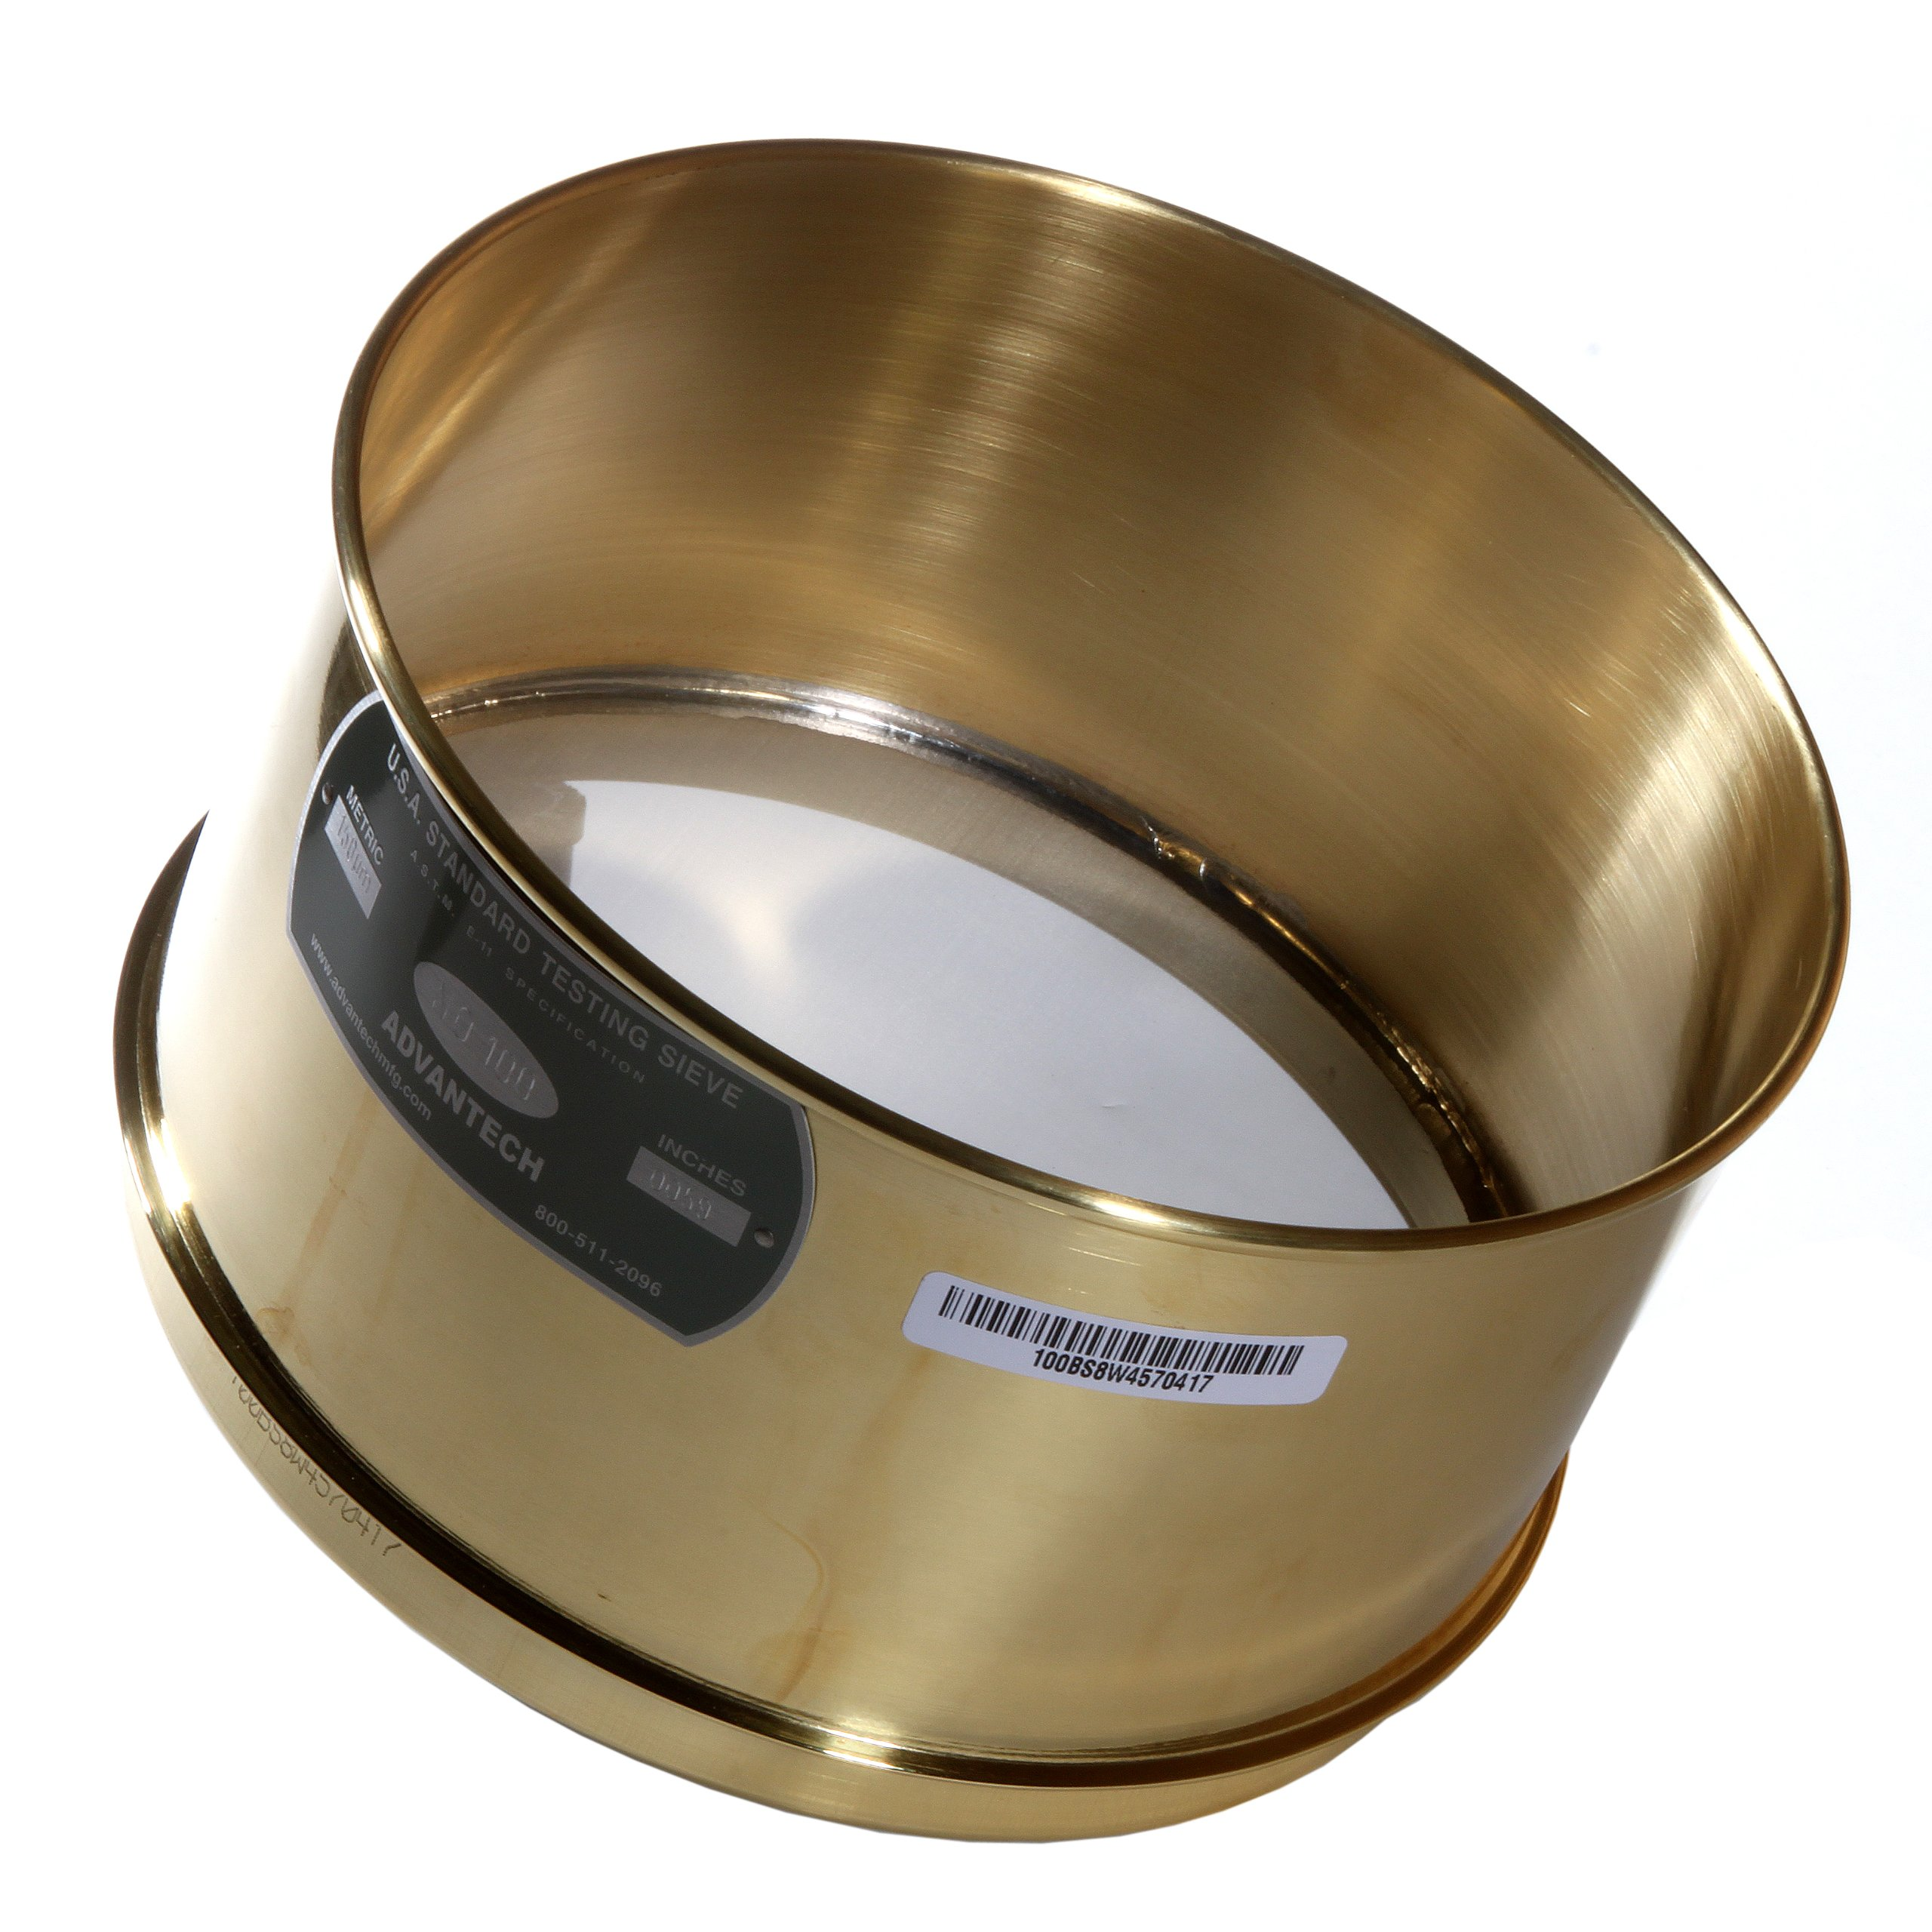 Advantech Brass Test Sieves with Stainless Steel Wire Cloth Mesh, 8'' Diameter, #100 Mesh, Full Height by Advantech